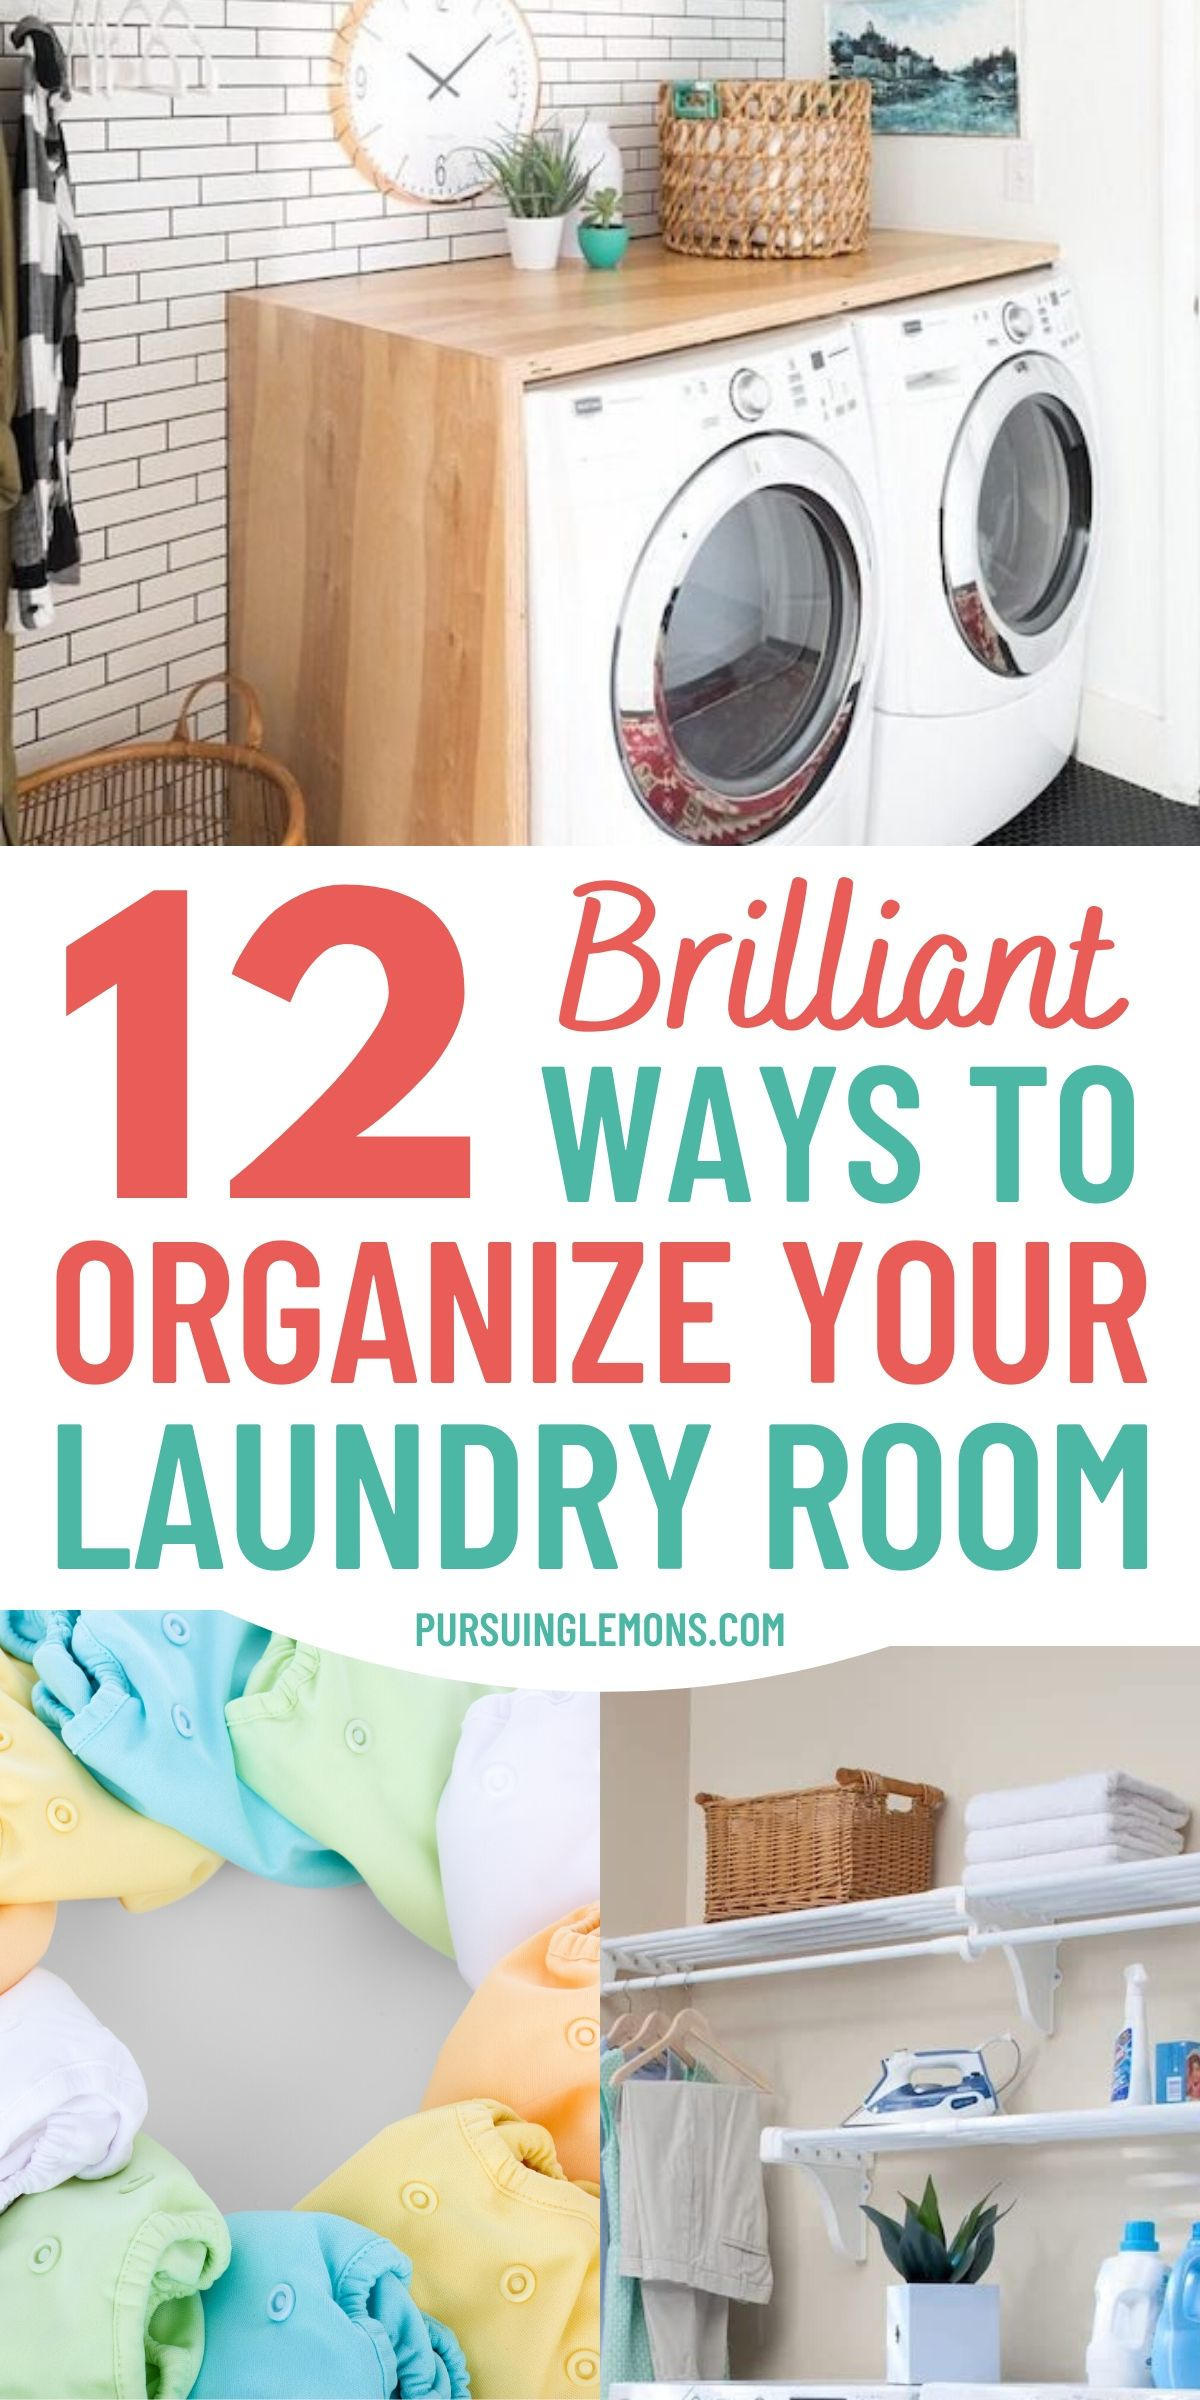 12 Laundry Room Hacks That Will Make Your Life So Much Easier | Need some organization ideas for your laundry room? Try these laundry room tricks and laundry room organization hacks today! #laundryhacks #laundryorganization #laundryroom #organization